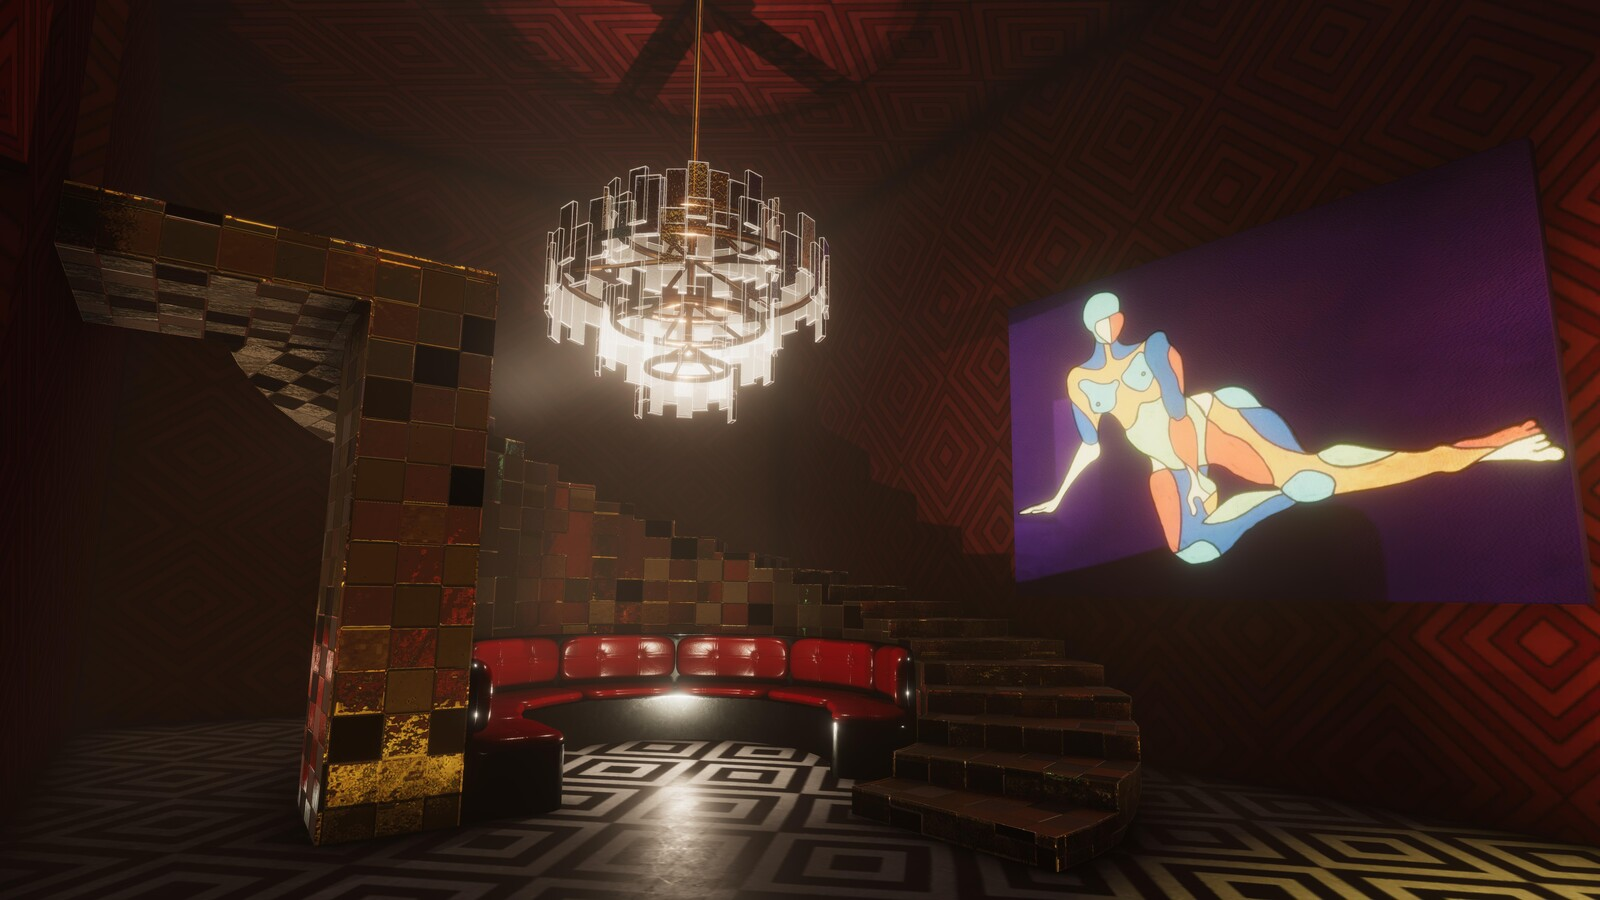 The VIP lounge of the disco server in Masquerade. This room is quite Art Deco yet has glowing yellow platforms on the other side of the room which more resemble the disco era.